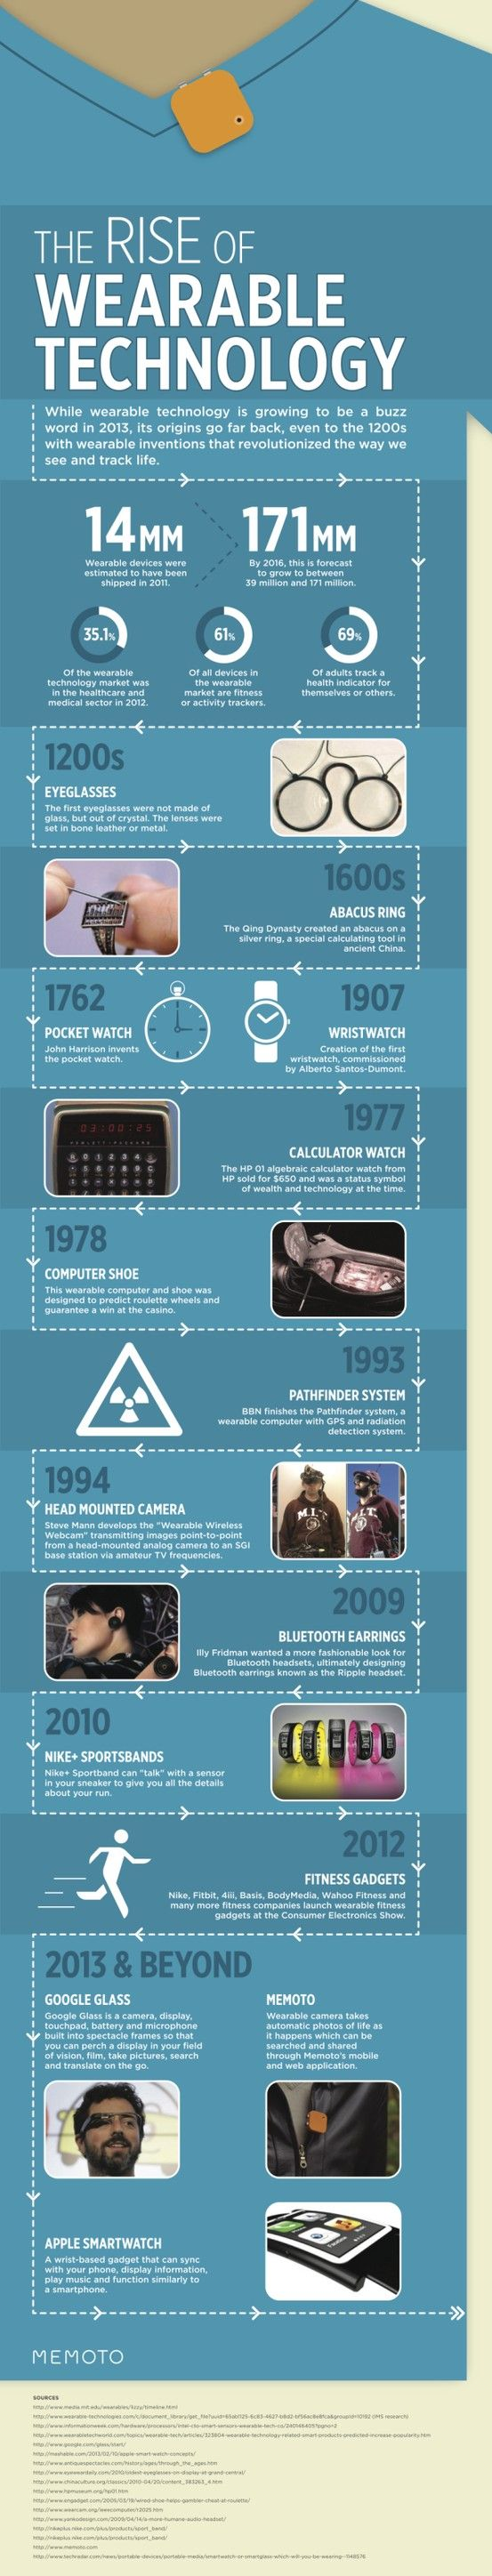 The Rise of Wearable Technology #wearabletech #tech #technology